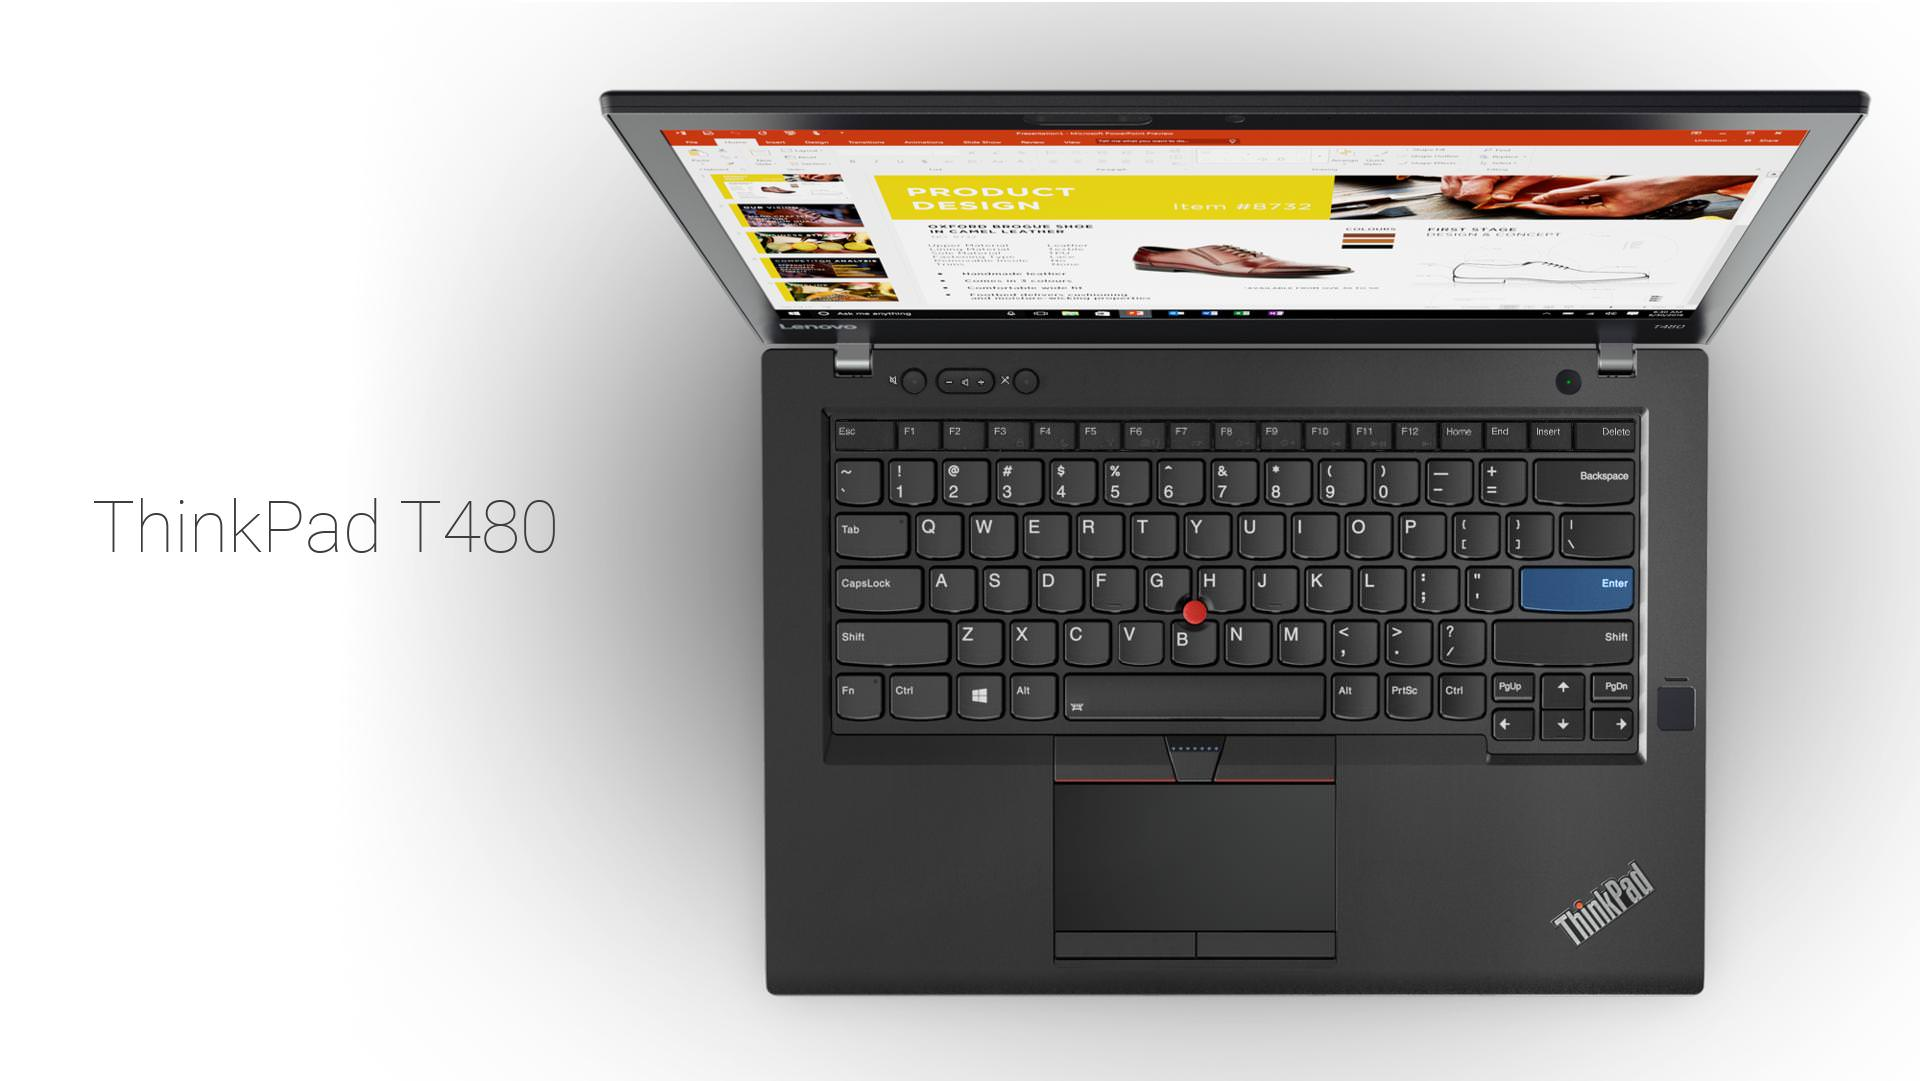 Laptop Lenovo ThinkPad T480 -19.jpg